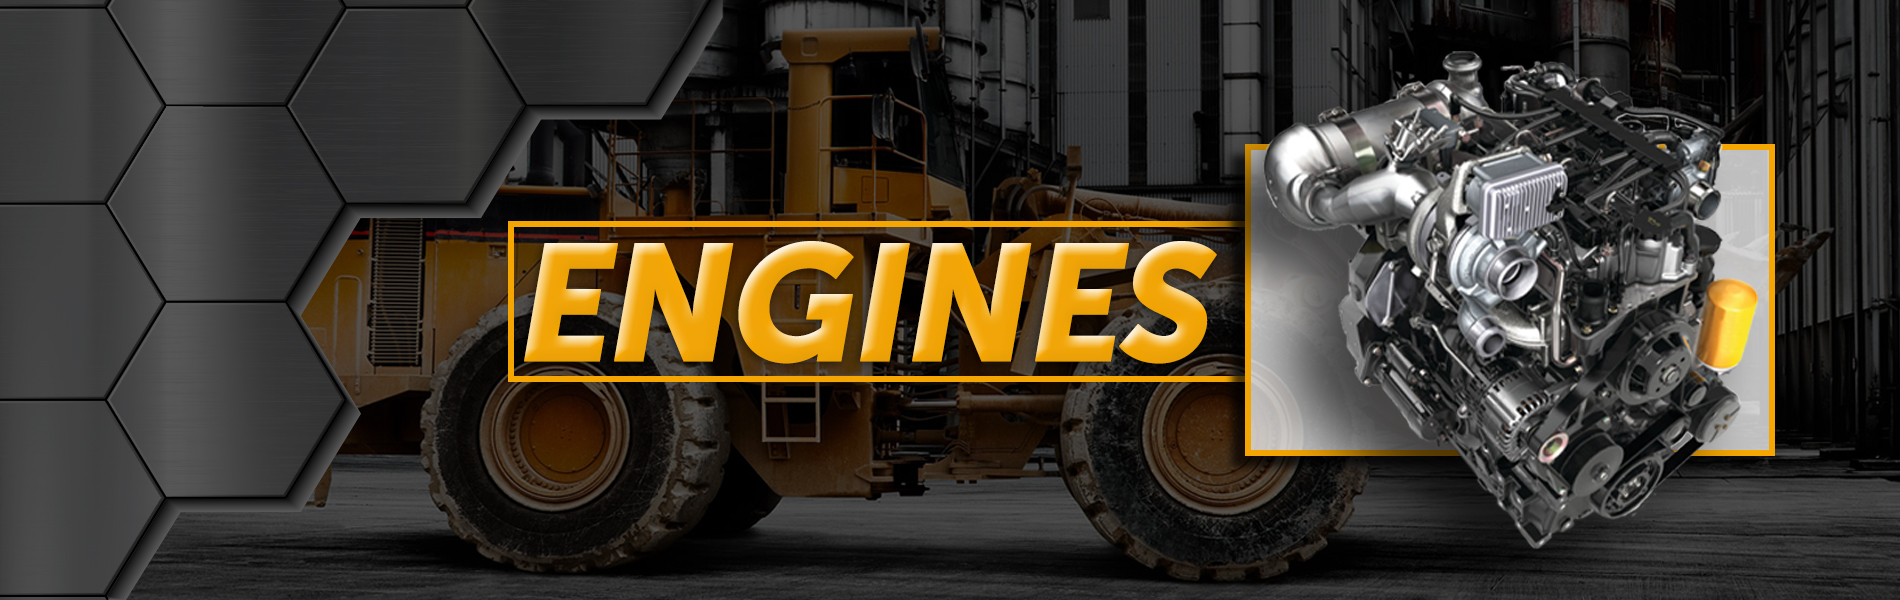 New & Used Heavy Equipment Parts | H&R Construction Equipment Parts